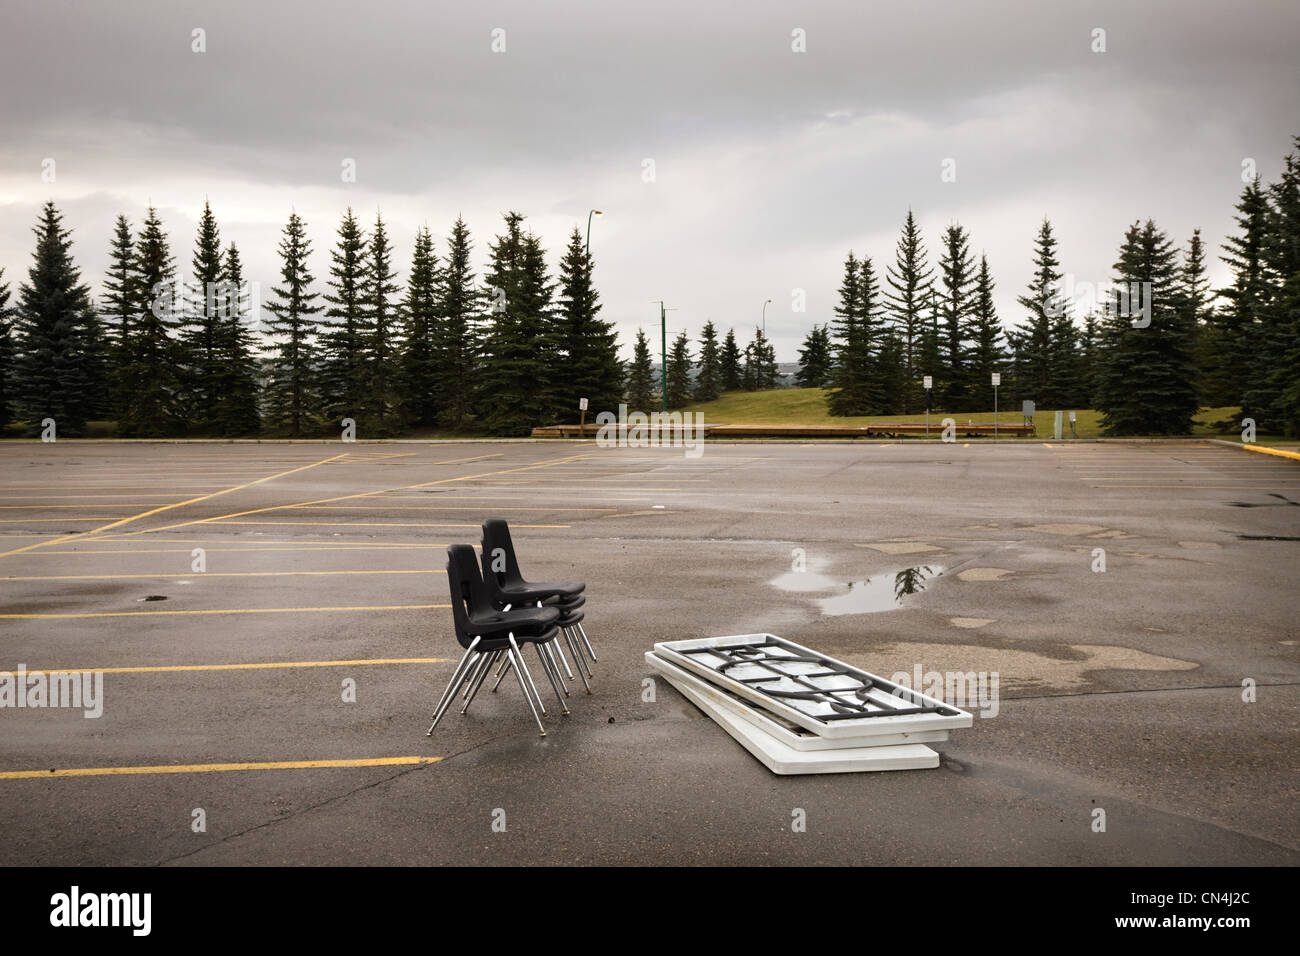 Chairs and tables left in a parking lot Stock Photo